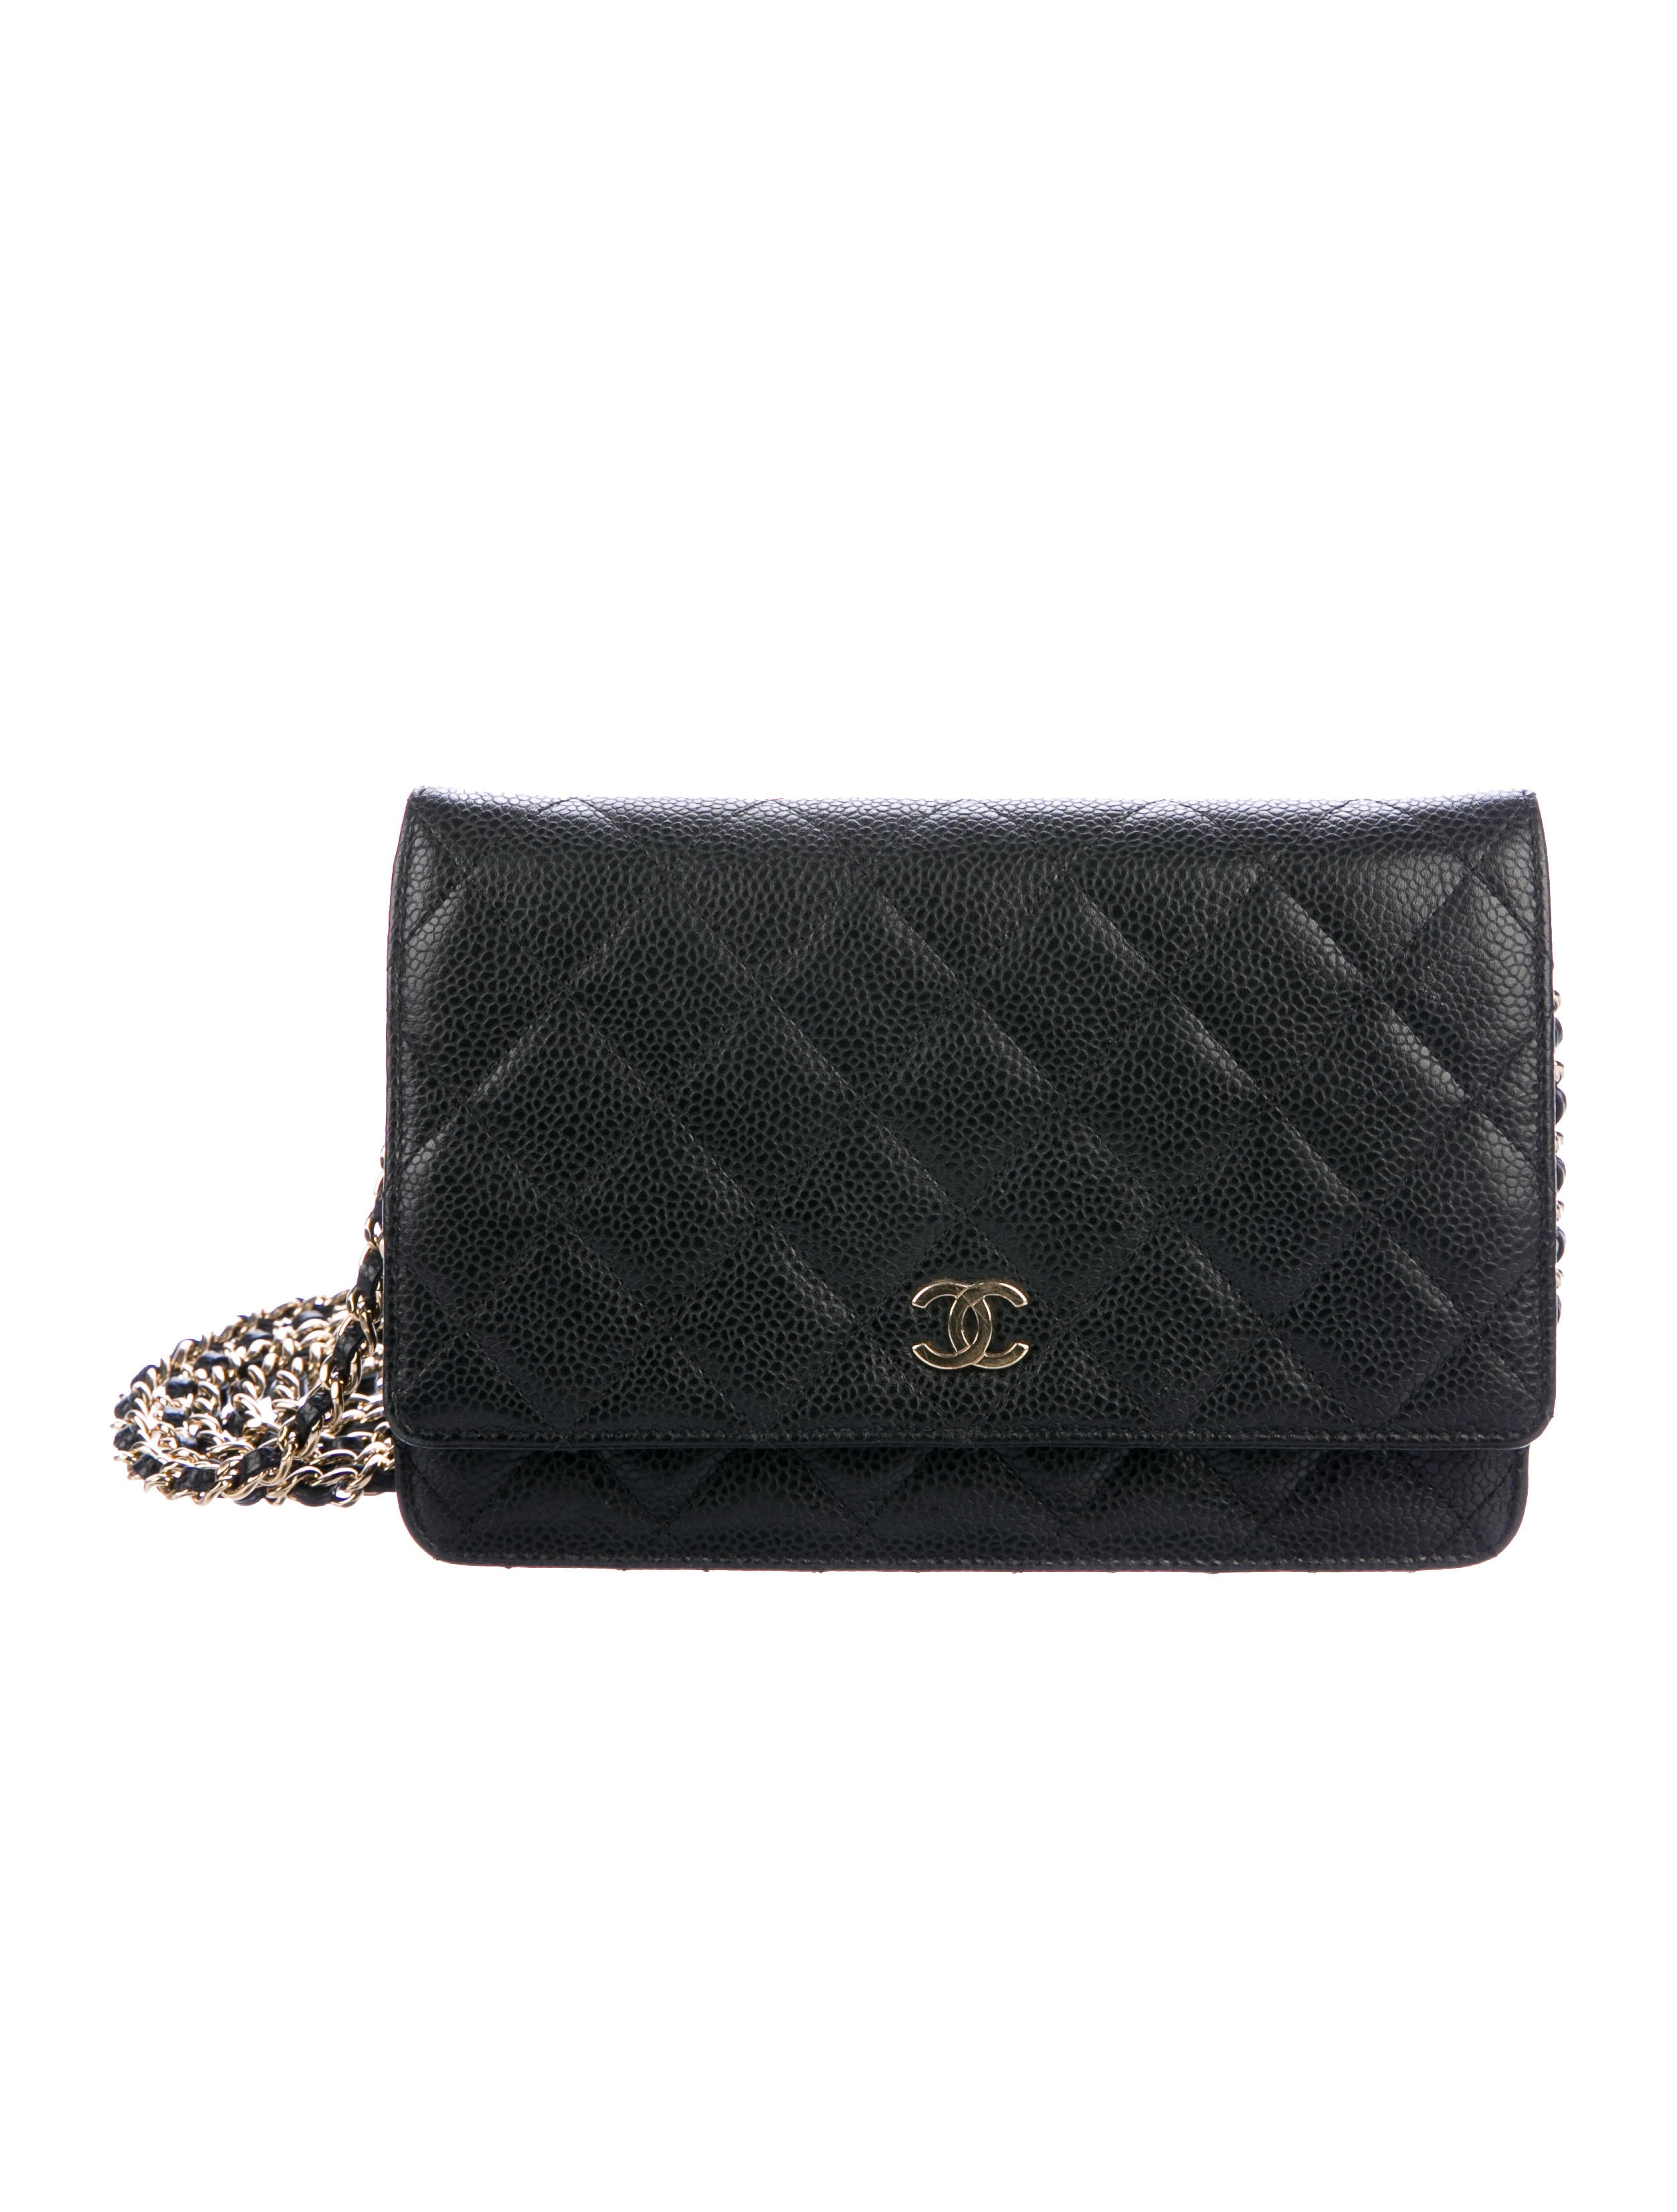 Chanel Caviar Quilted Wallet On Chain Handbags